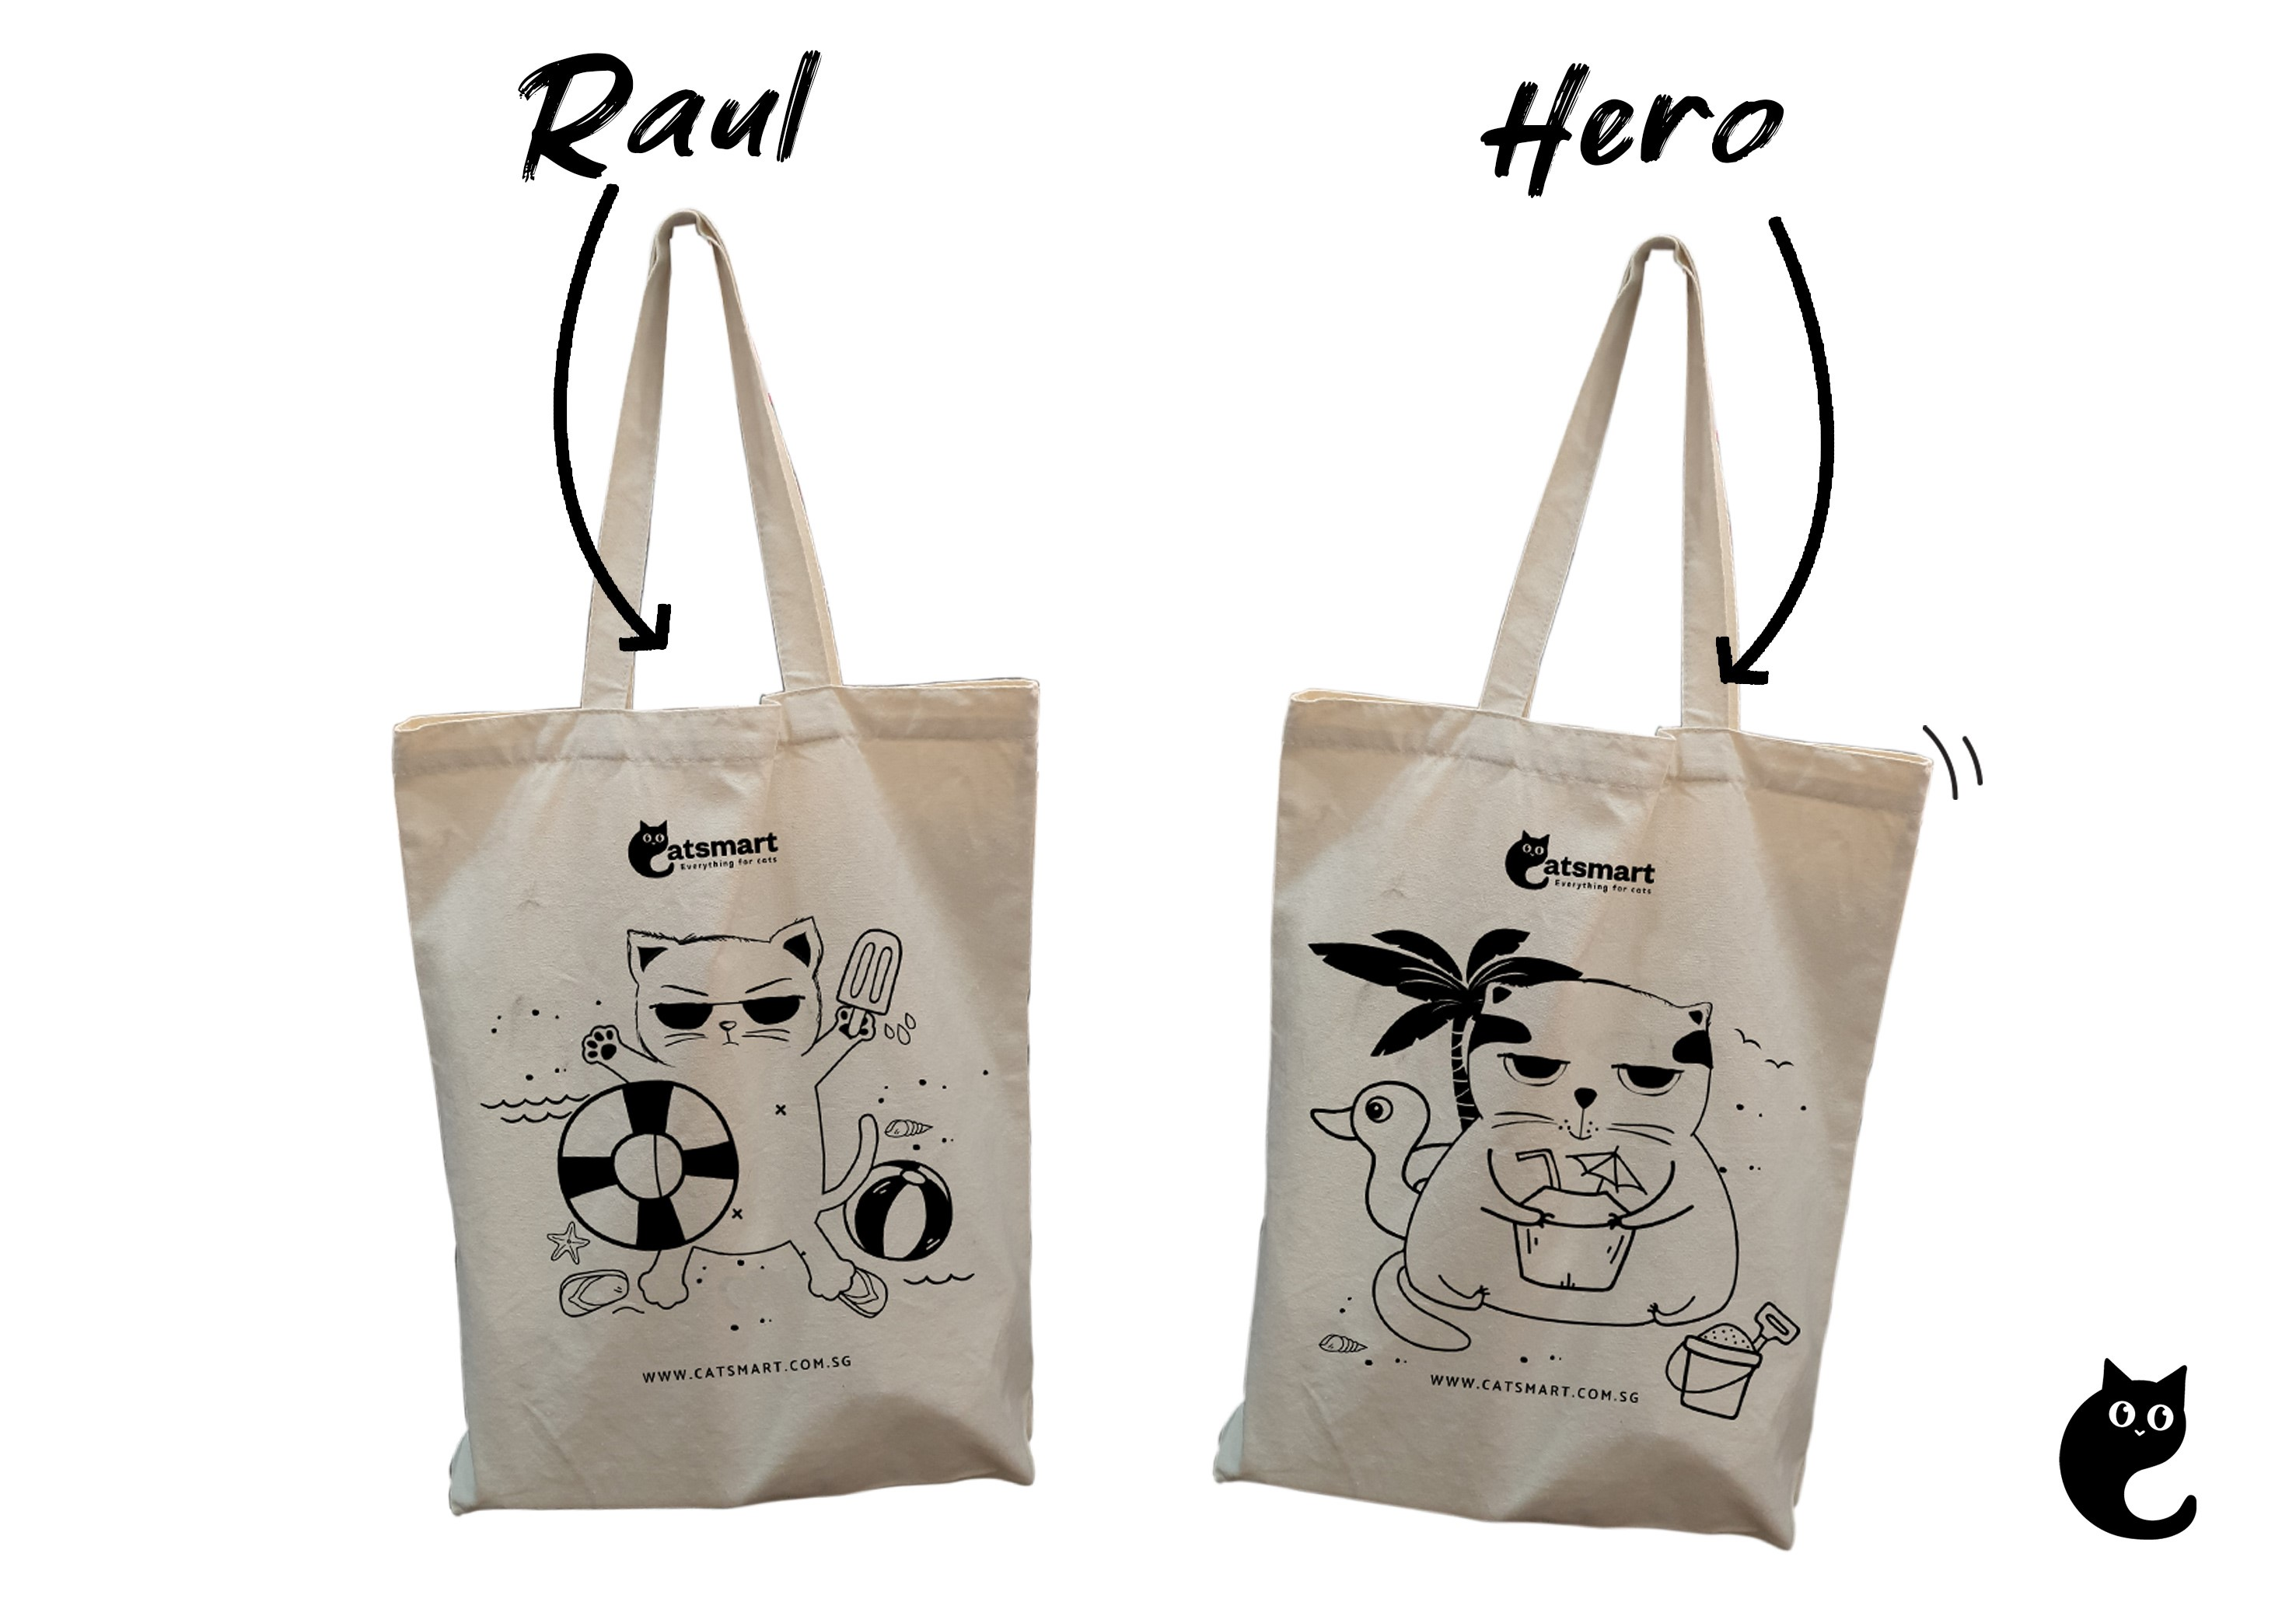 NEW! Stay Cool This Summer With The Limited Edition Hero Tote Bag